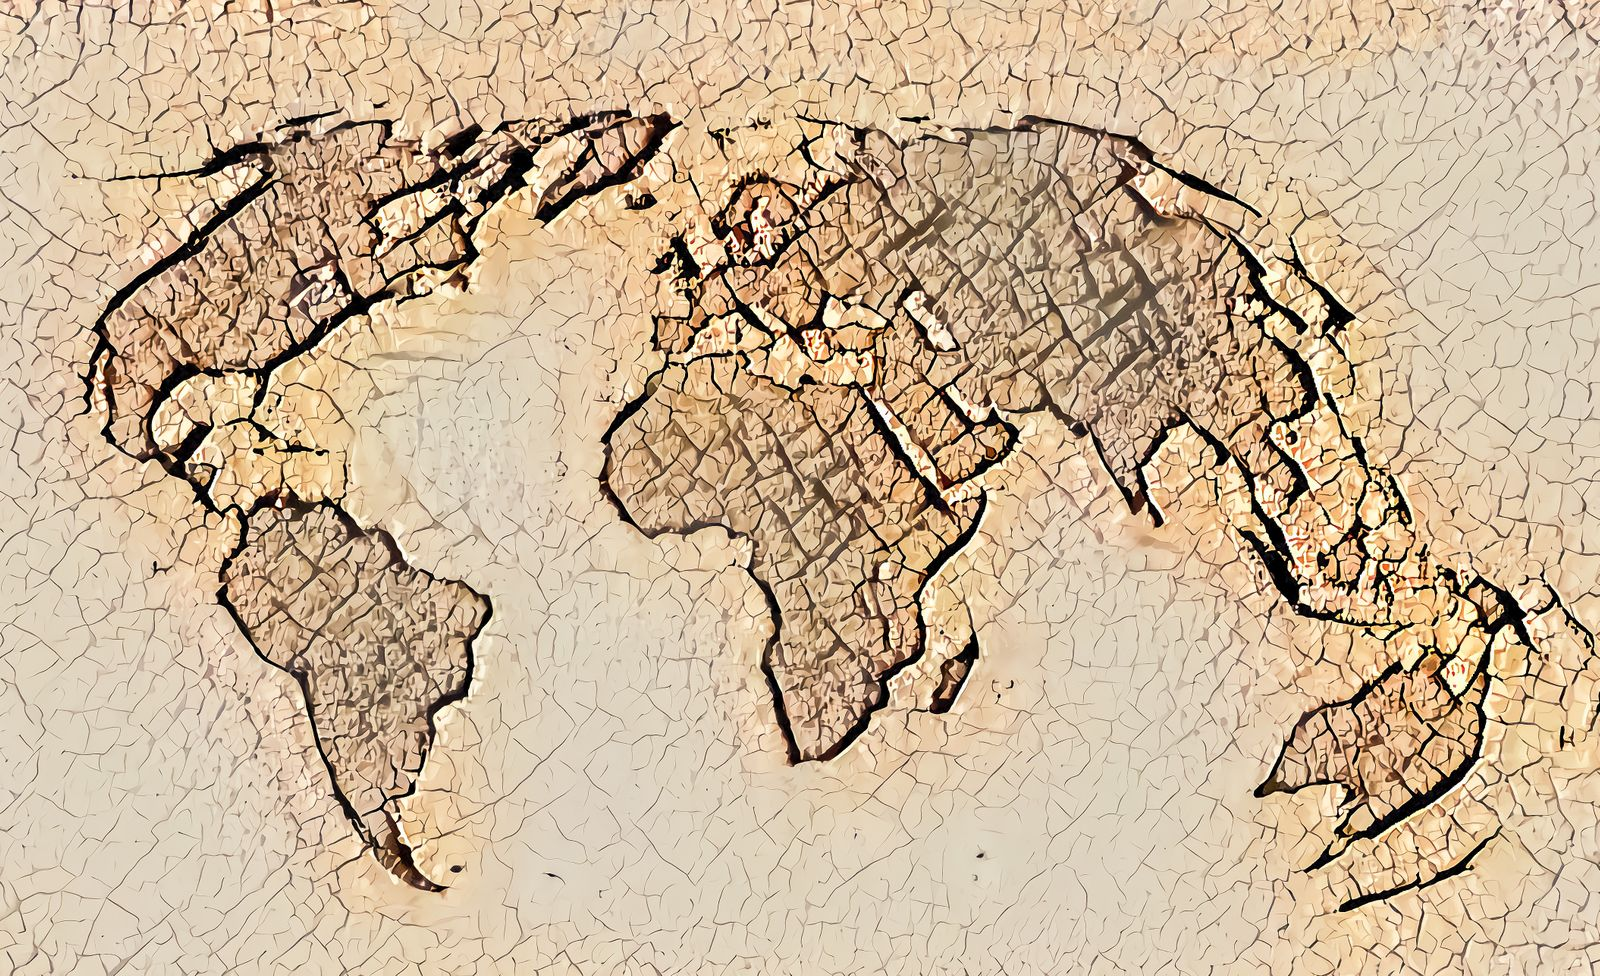 World map with dried and cracked soil